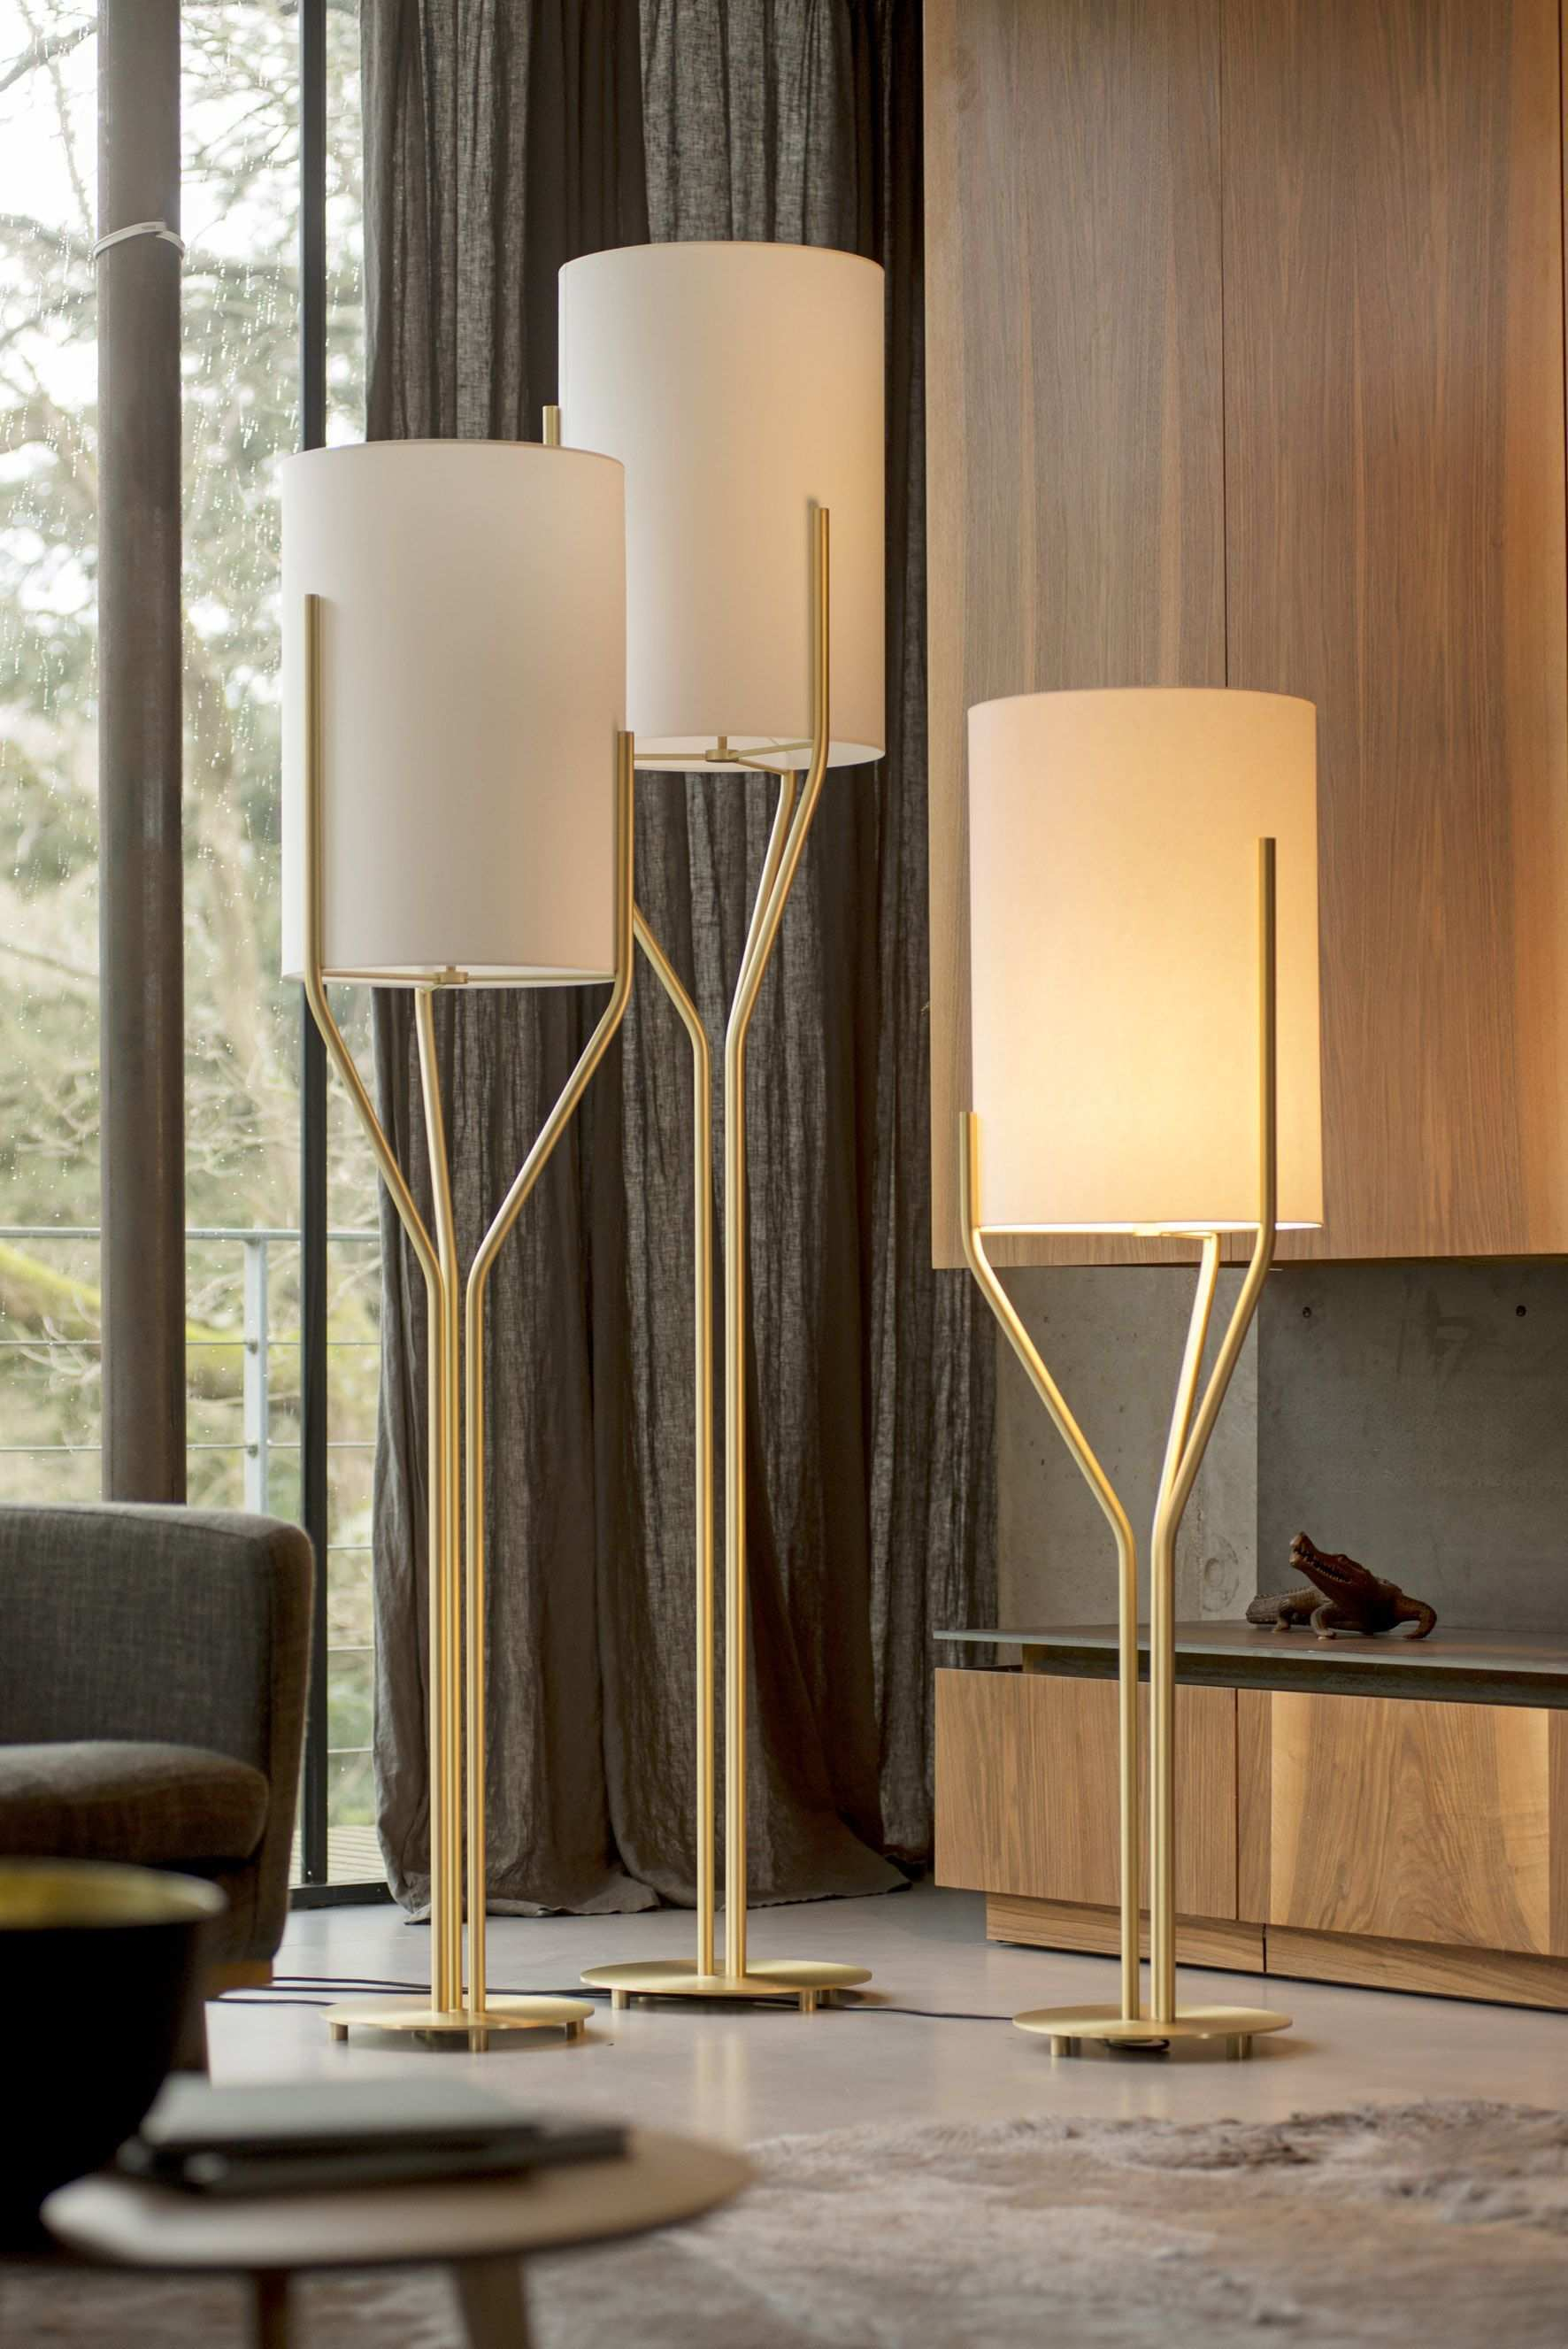 What's Hot On Pinterest Simple & Elegant Contemporary Floor Lamps 4 Contemporary Floor Lamps What's Hot On Pinterest: Simple & Elegant Contemporary Floor Lamps Whats Hot On Pinterest Simple Elegant Contemporary Floor Lamps 4